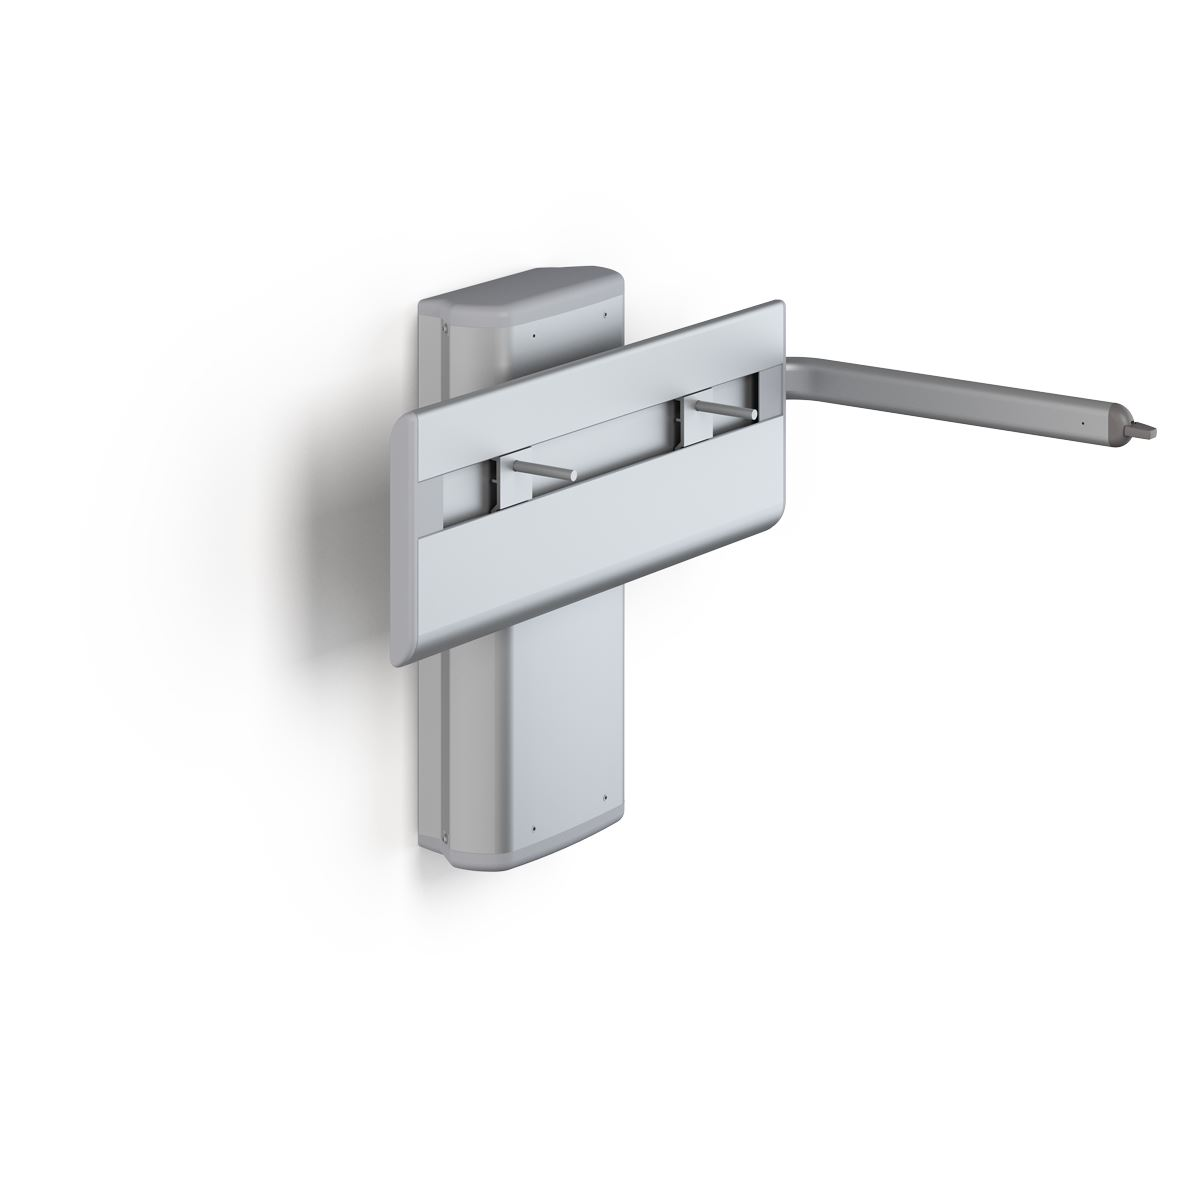 PLUS wash basin bracket with lever control, manually height adjustable with gas cylinder